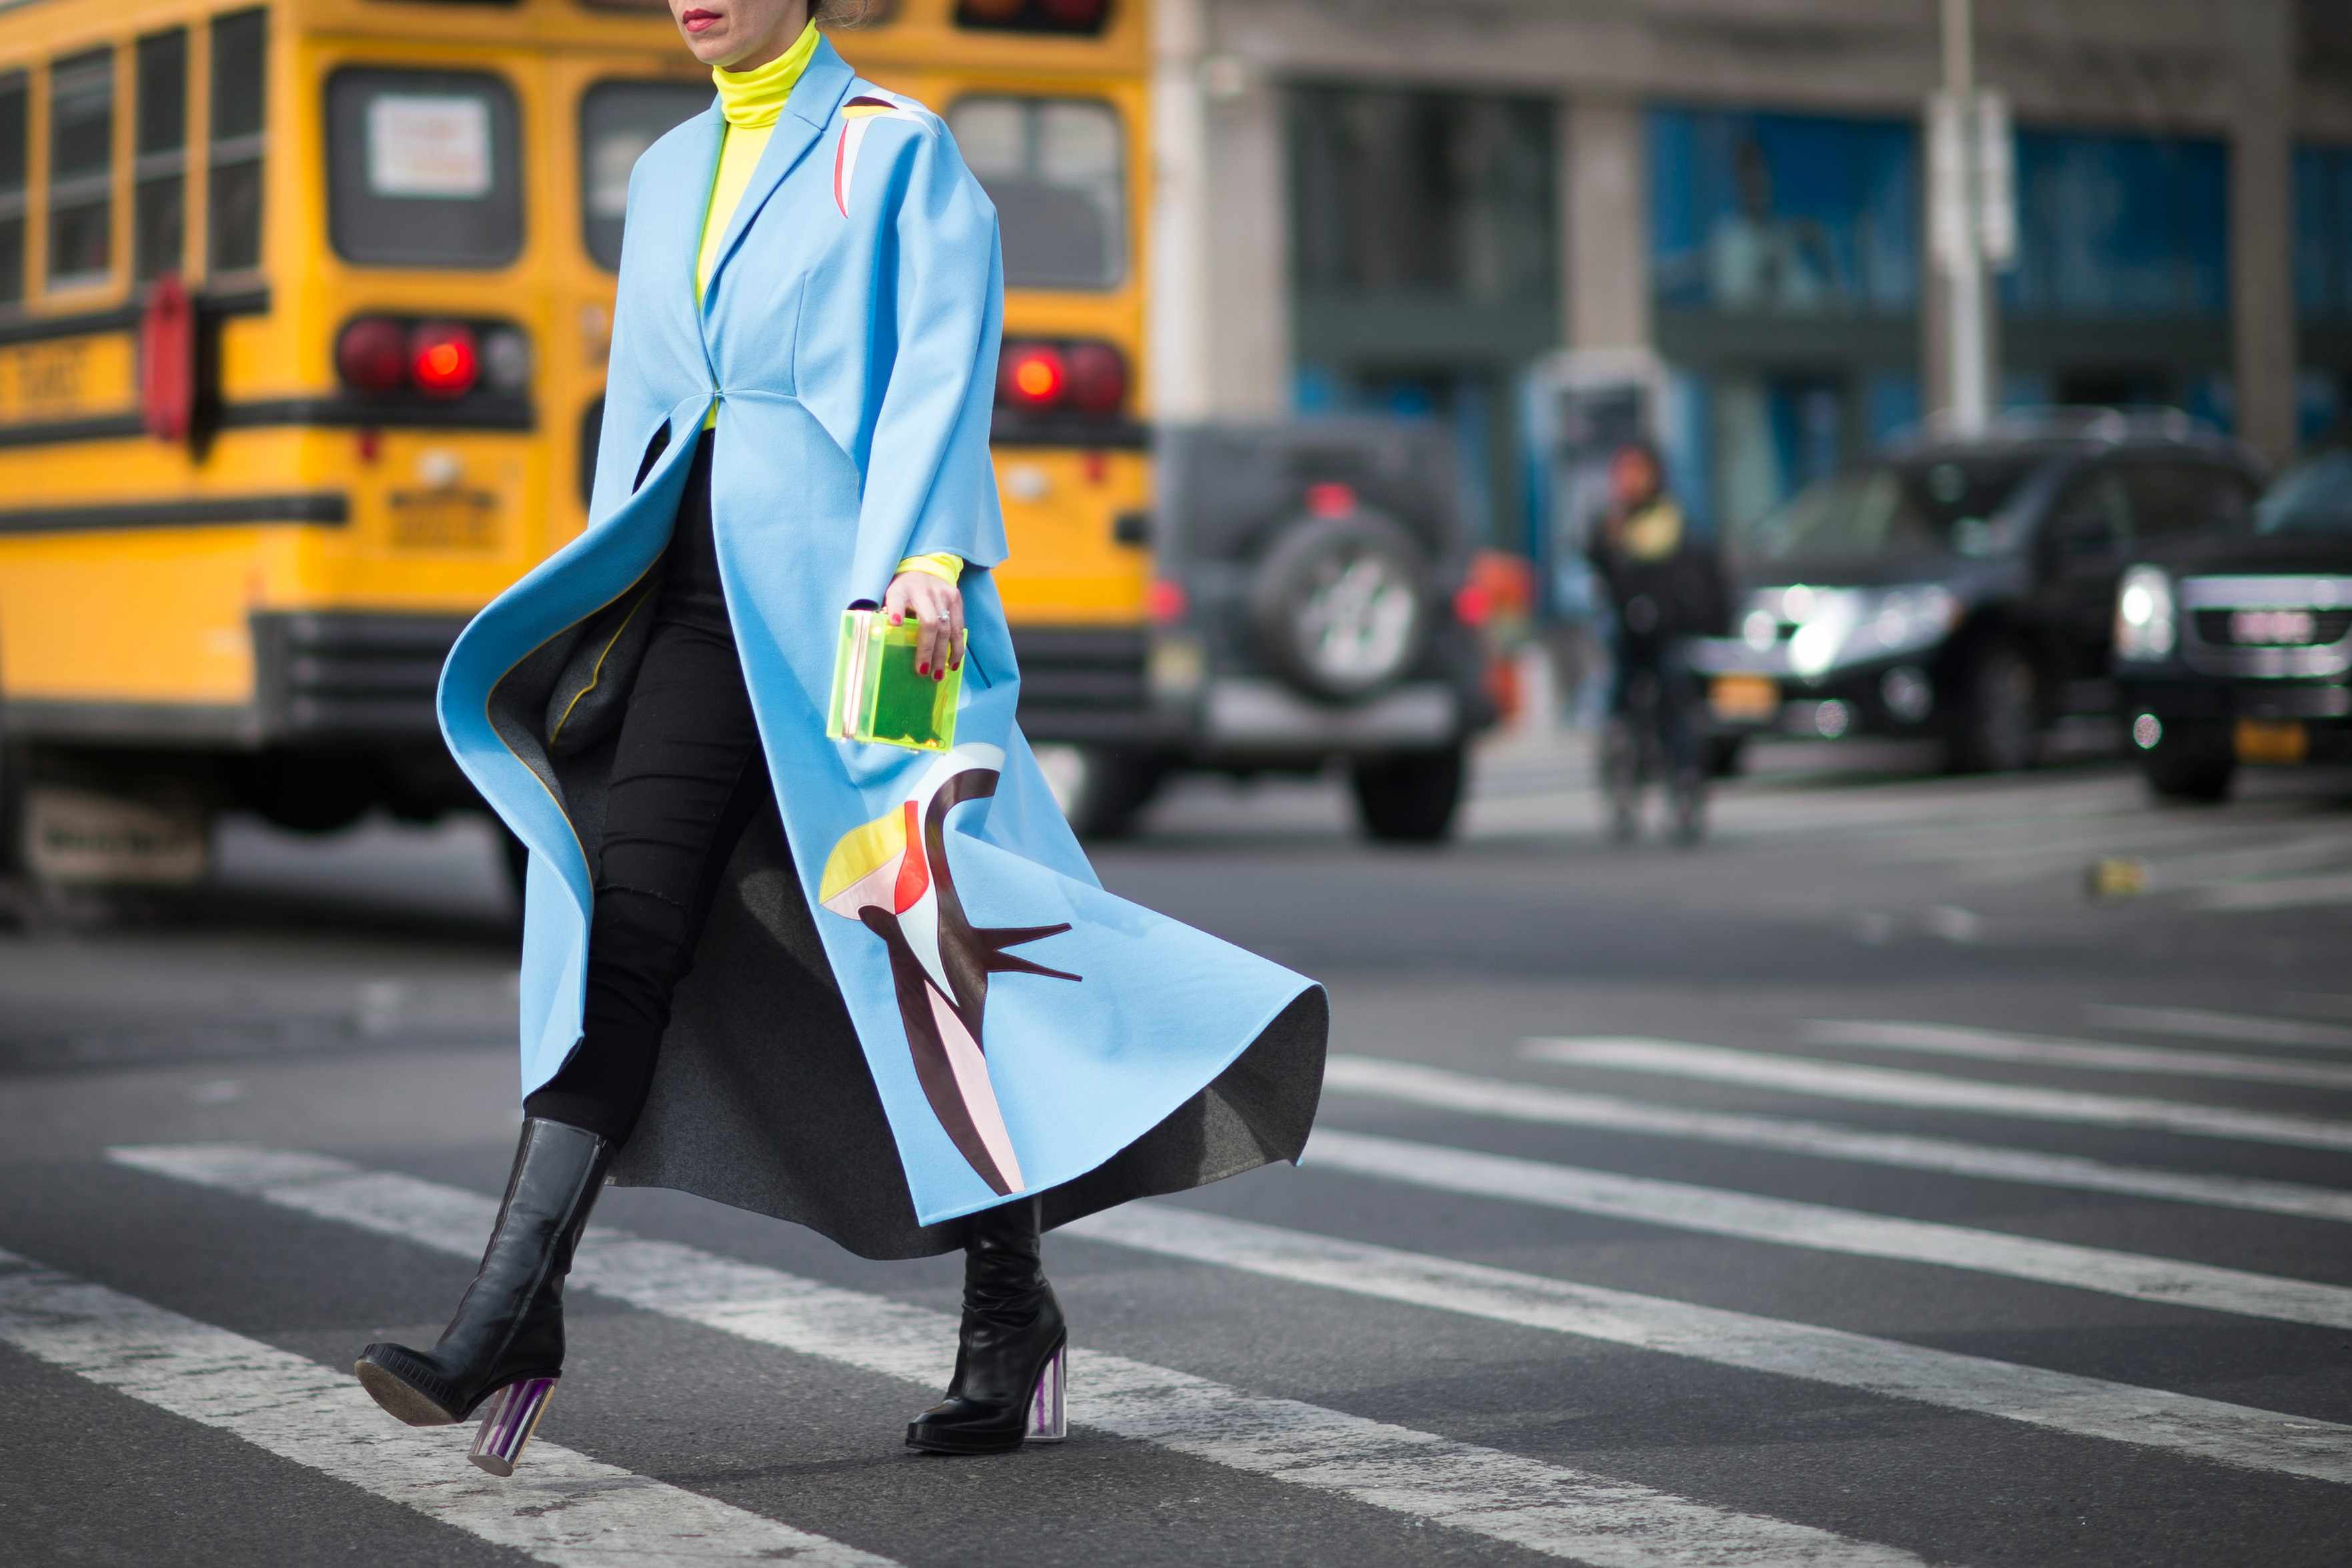 A stylish guide to Fashion Week